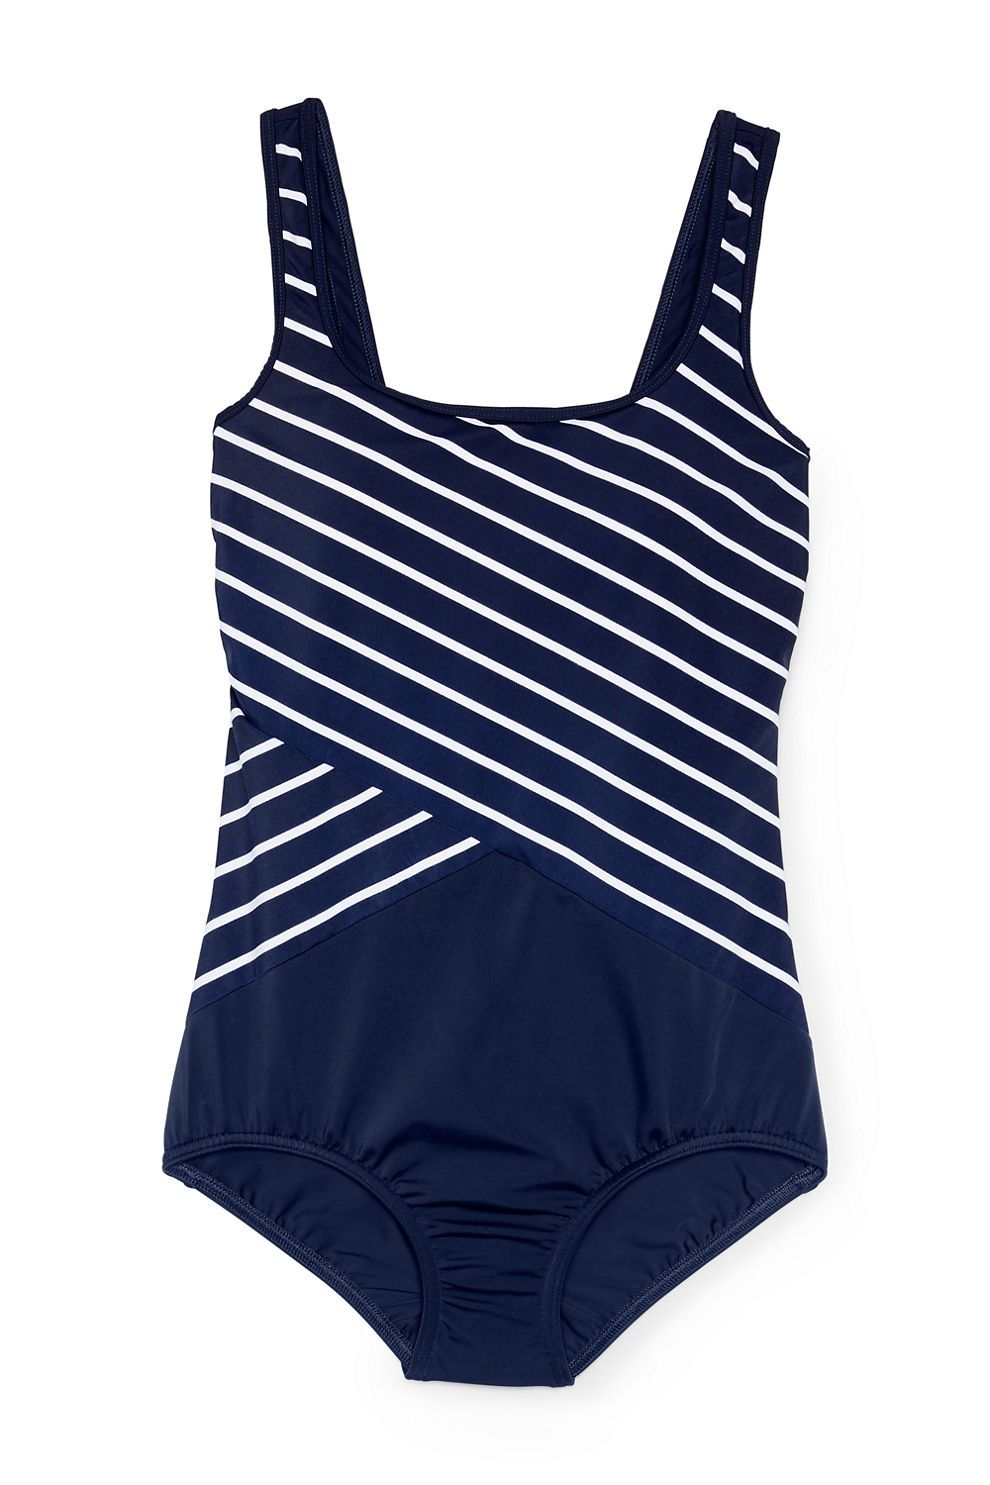 7774ed7a96d Women's Tugless One Piece Swimsuit Soft Cup from Lands' End | My ...